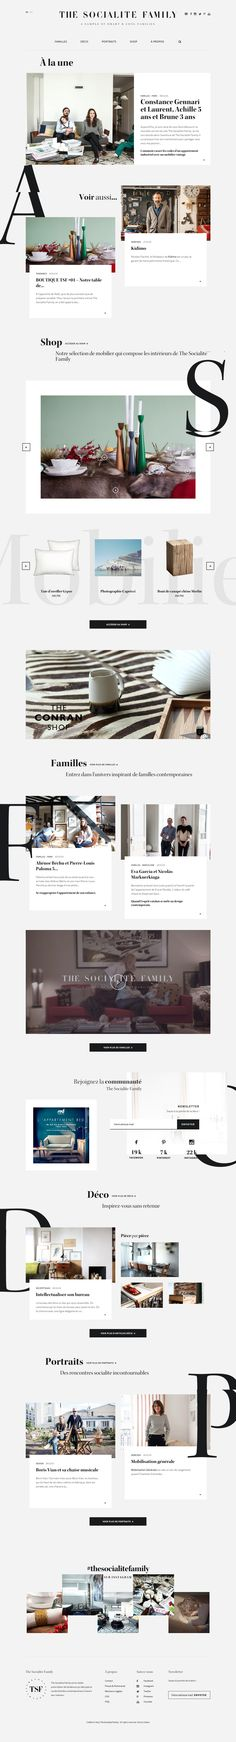 The Socialite Family — Clean & efficient. Nice grid. http://www.thesocialitefamily.com